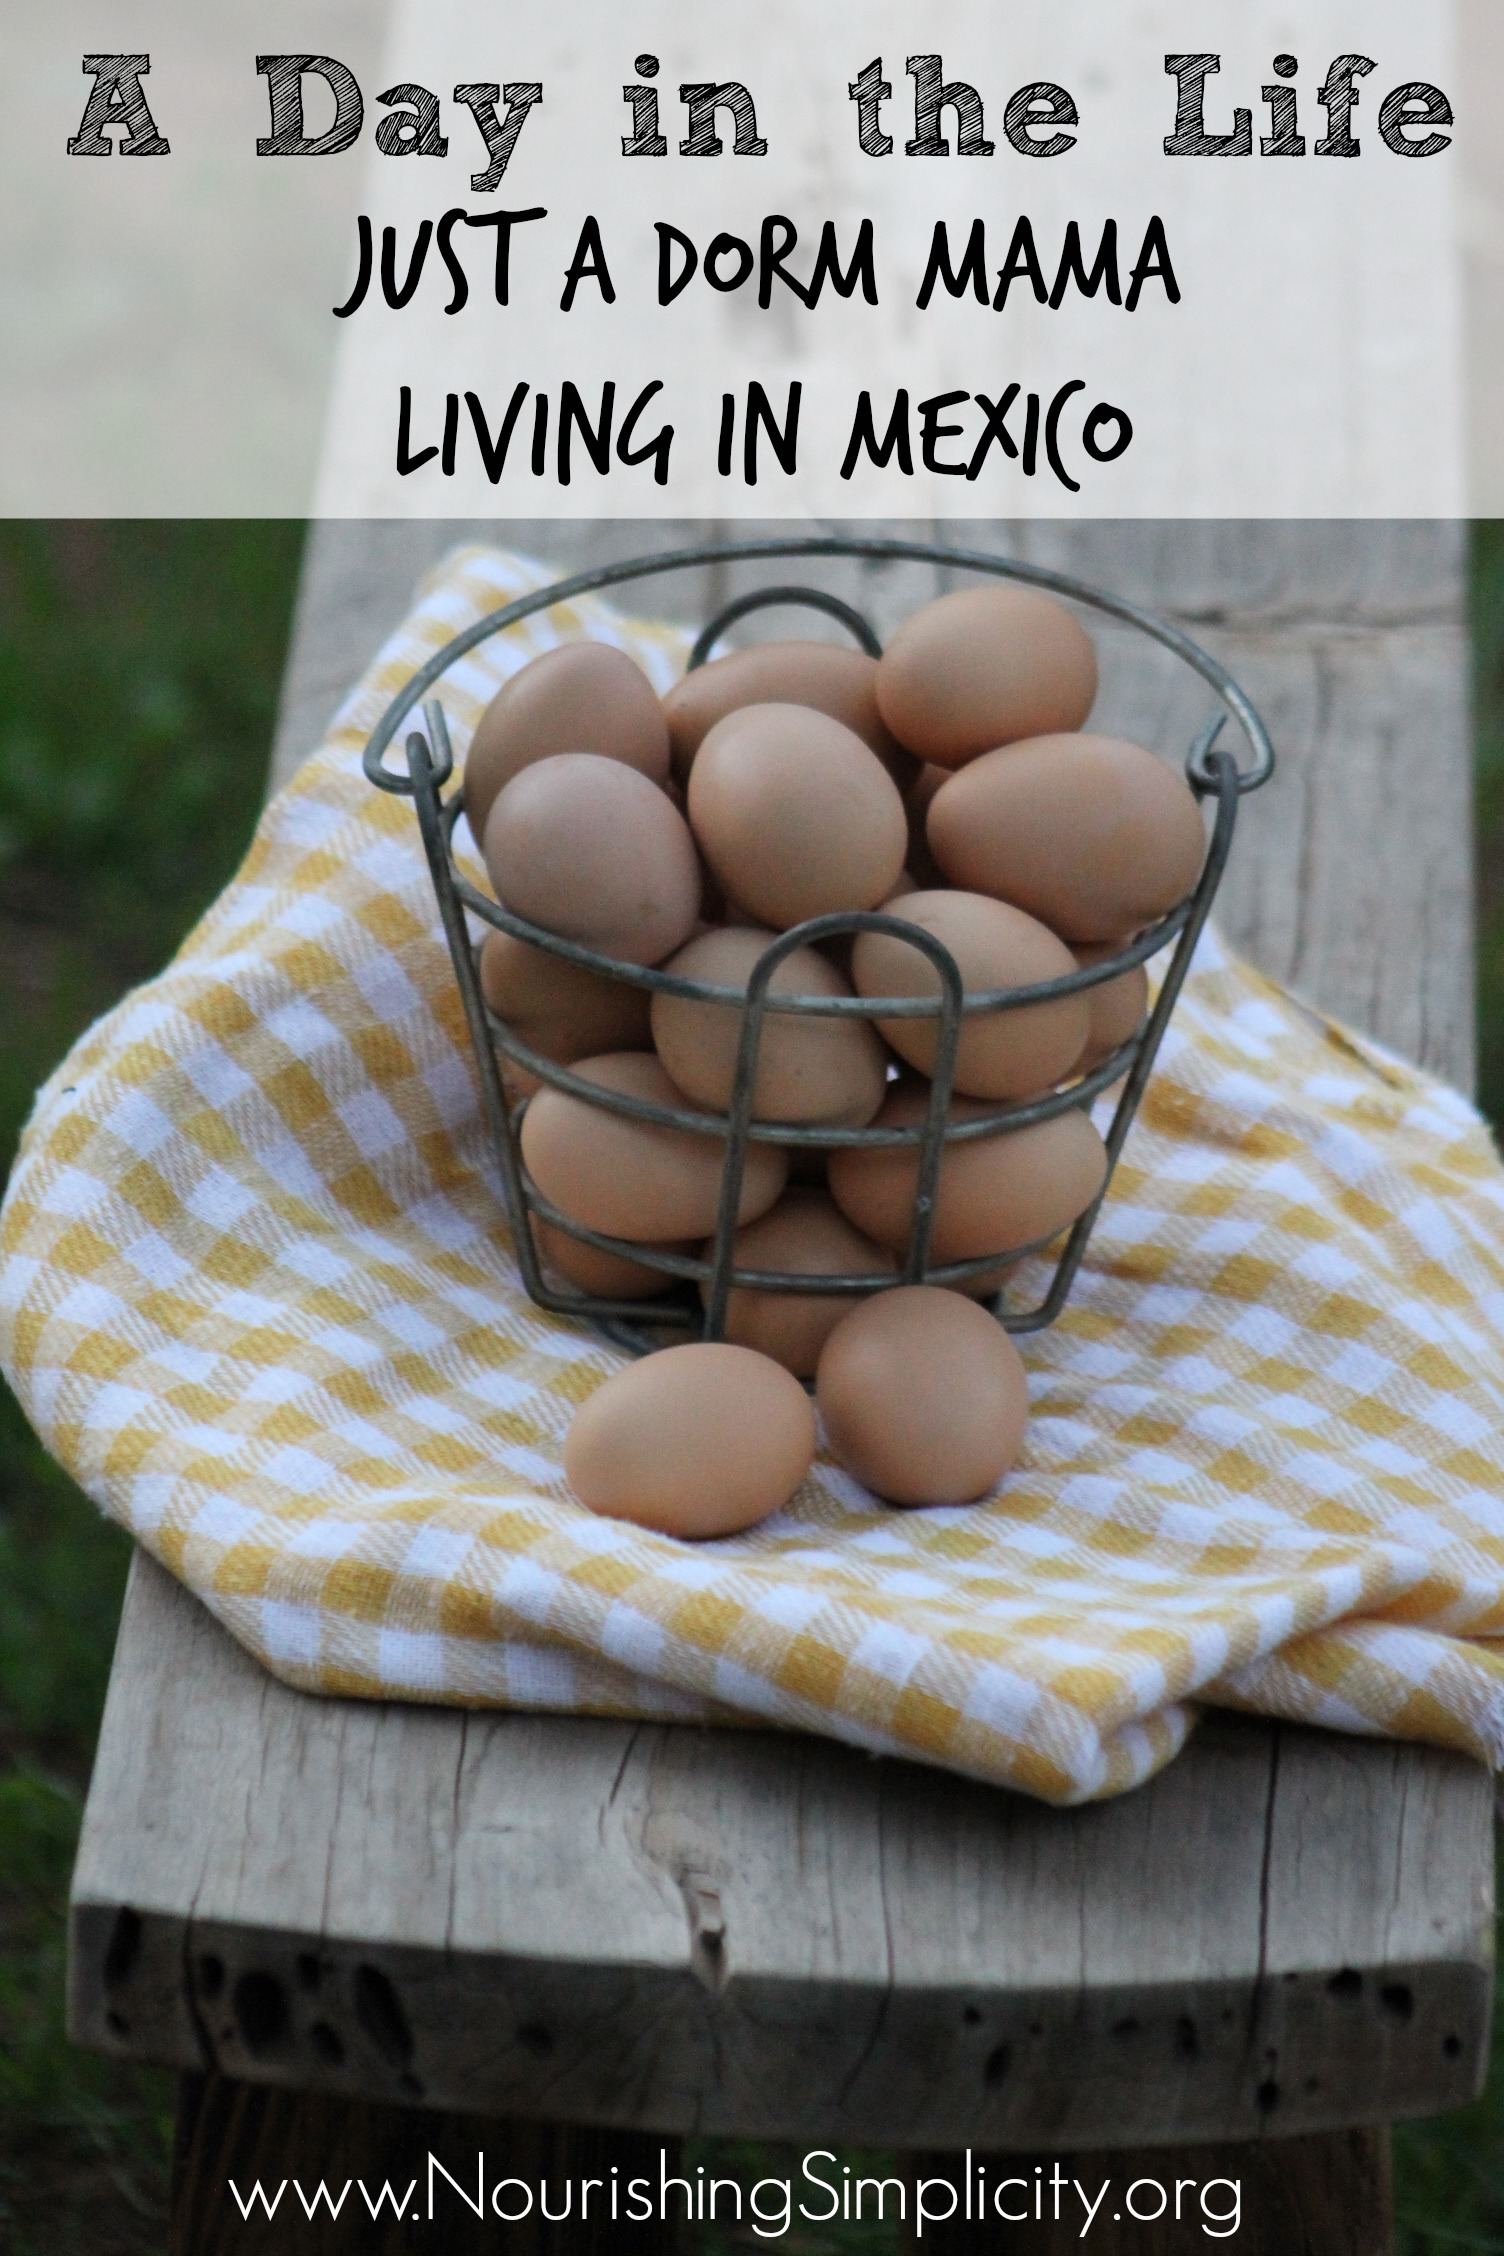 A Day in the Life: I'm Just a Dorm Mama Living in Mexico